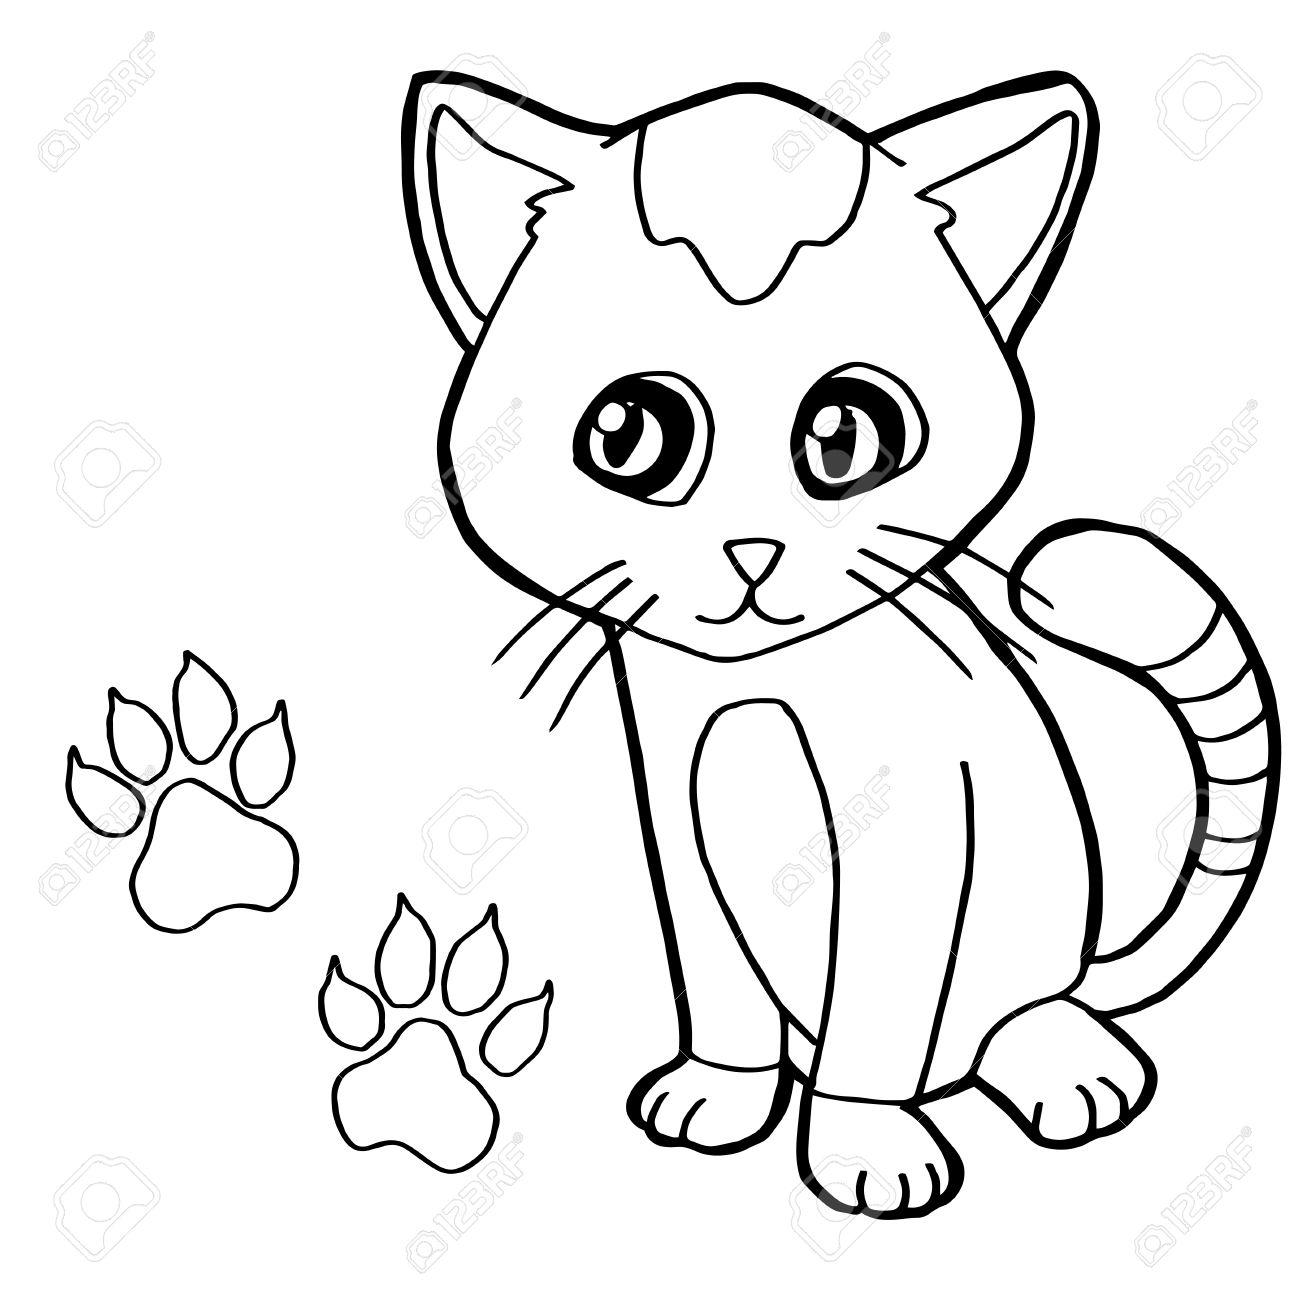 1300x1300 Paw Print With Cat Coloring Page Vector Royalty Free Cliparts